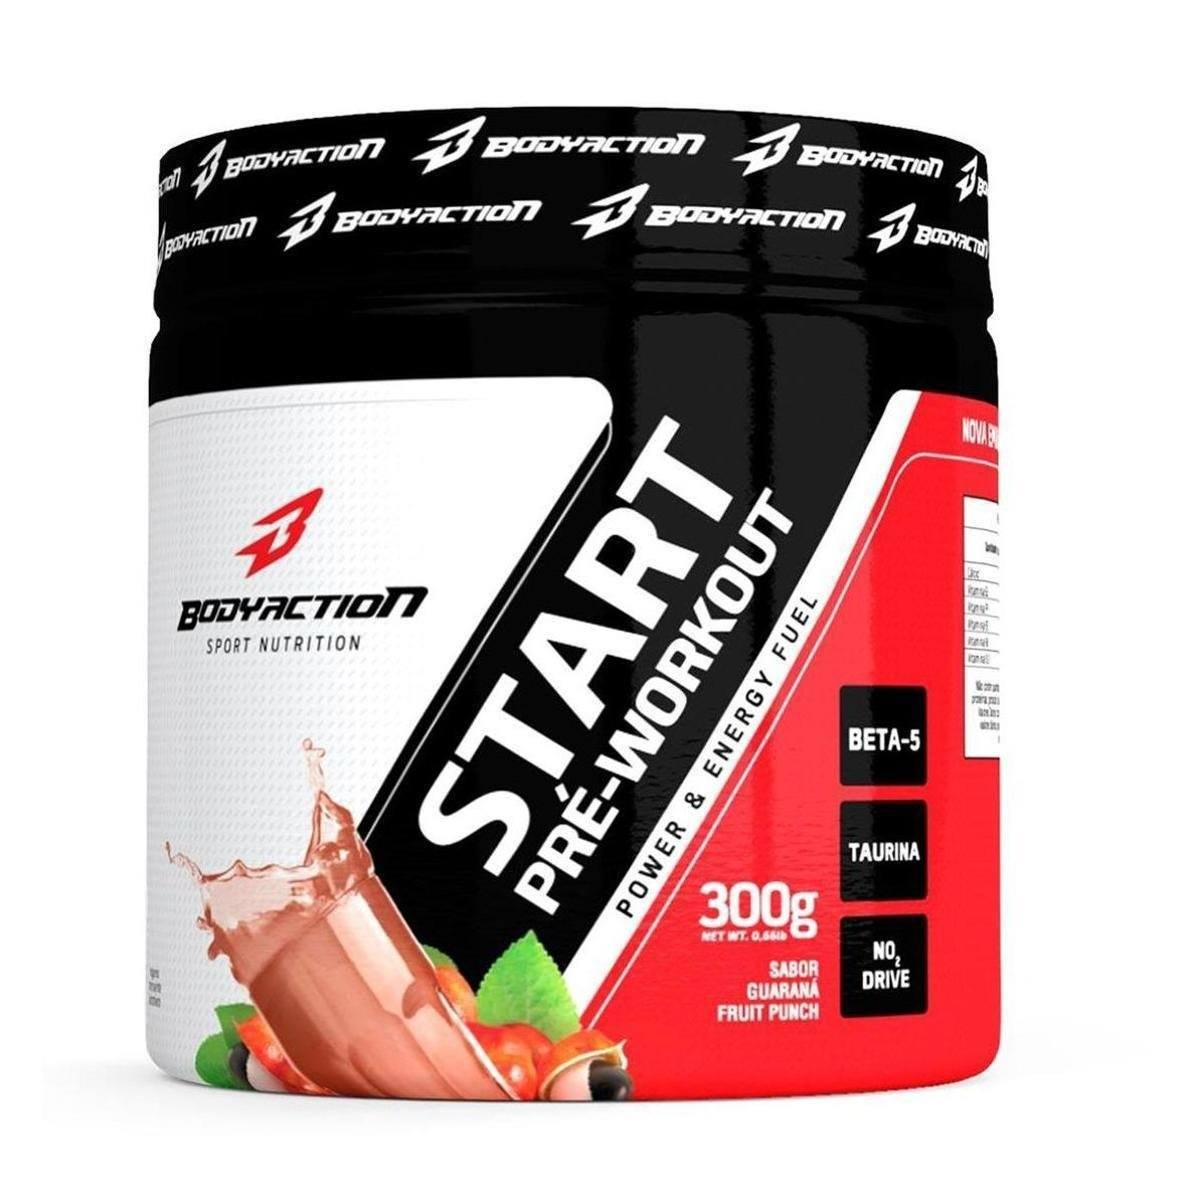 Pre-Treino Start Pre-Workout 300G Guarana Fruit Punch